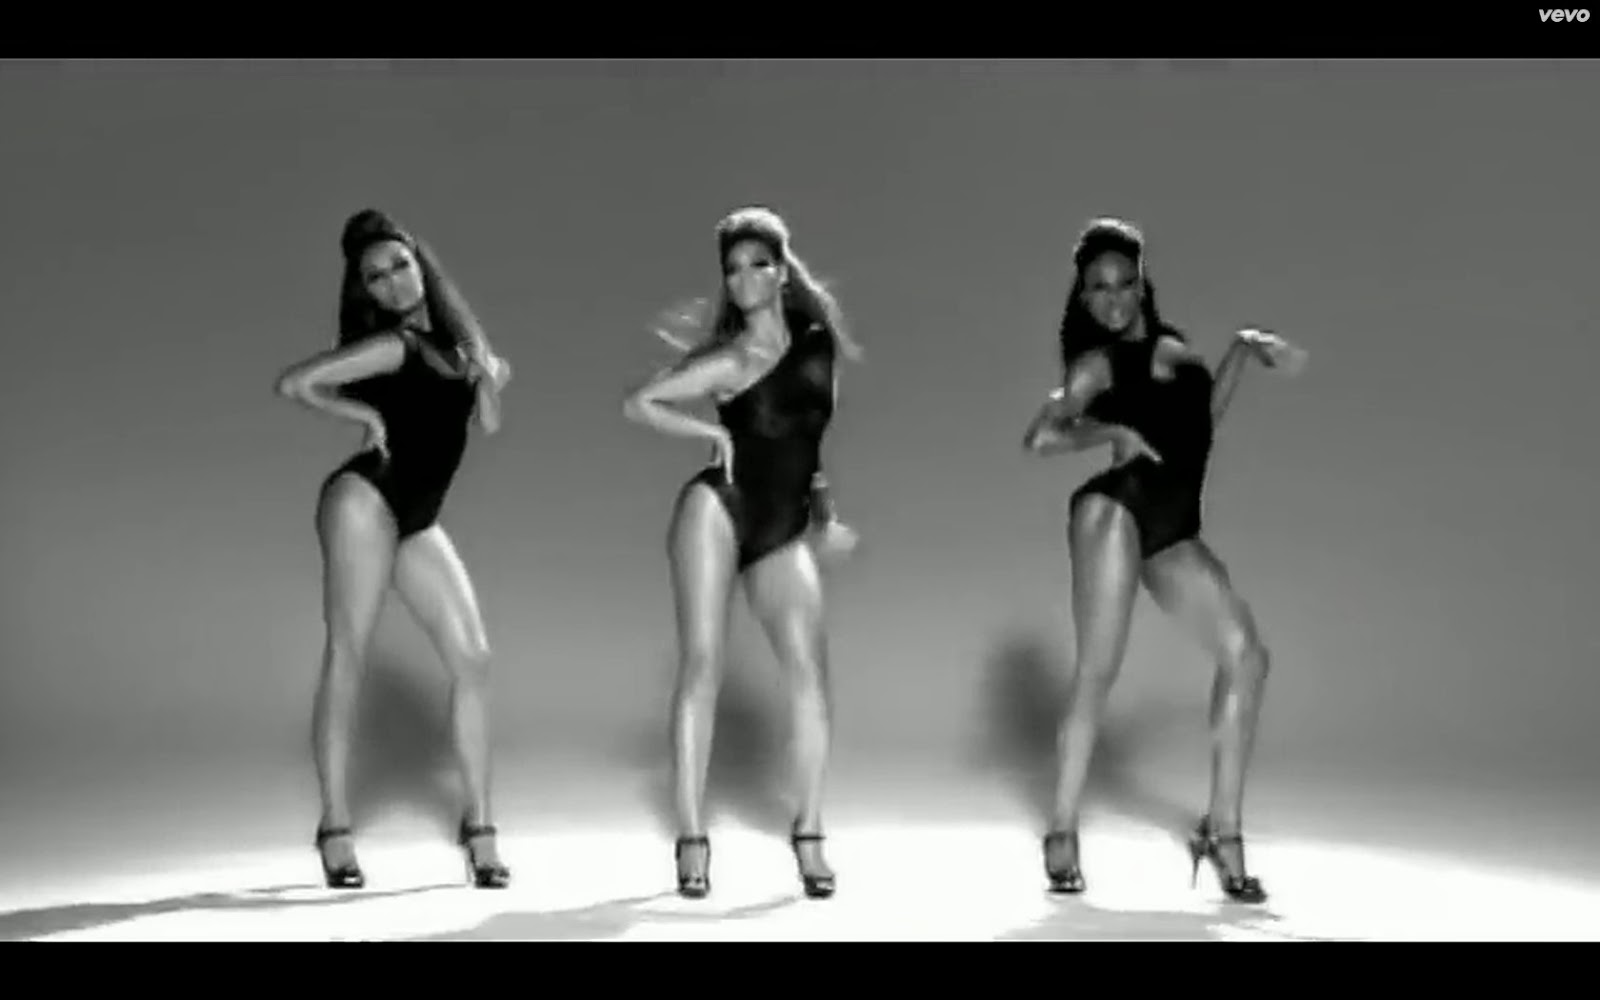 from Kannon tranny in beyonce video single ladies